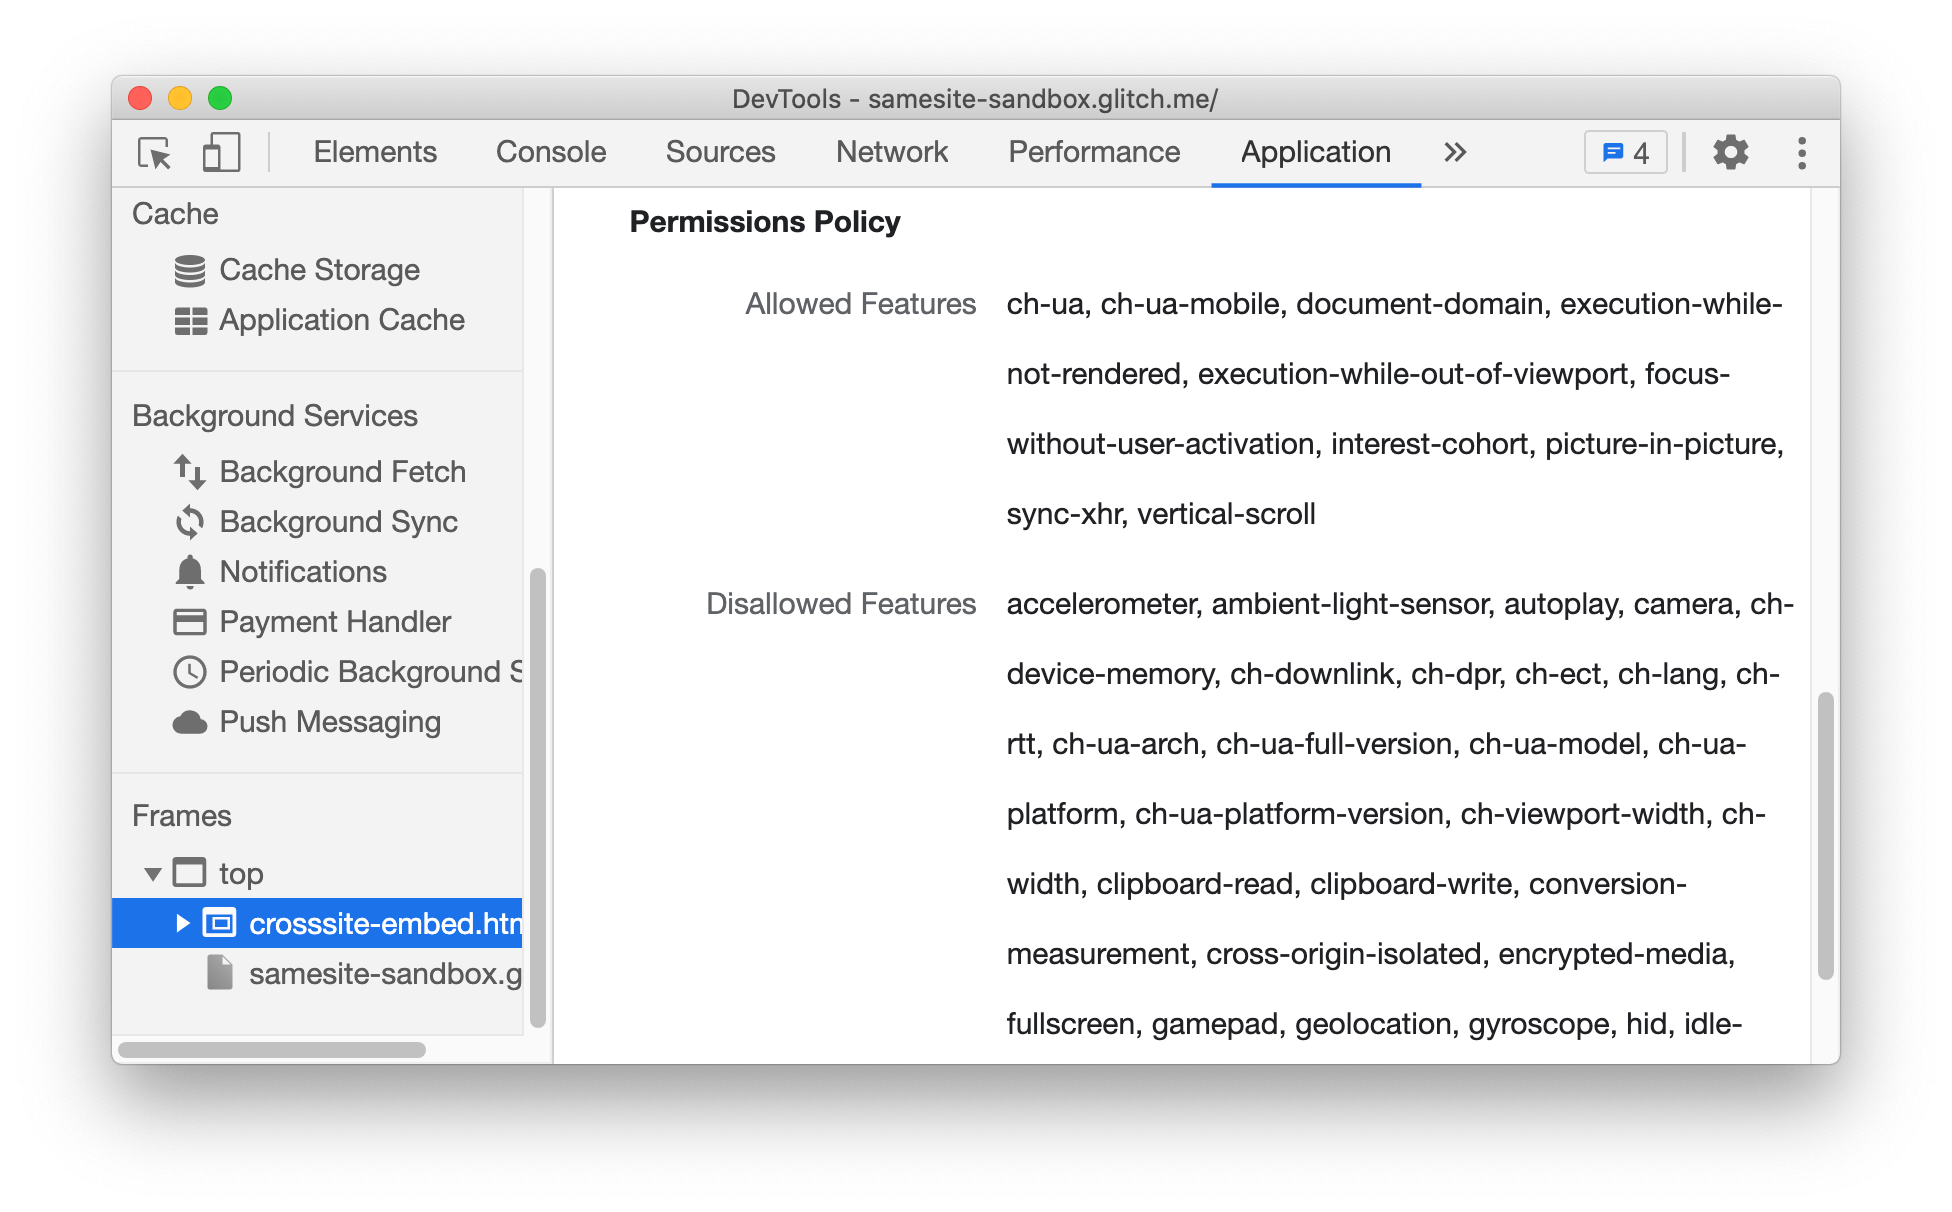 Allowed/disallowed features based on Permission policy